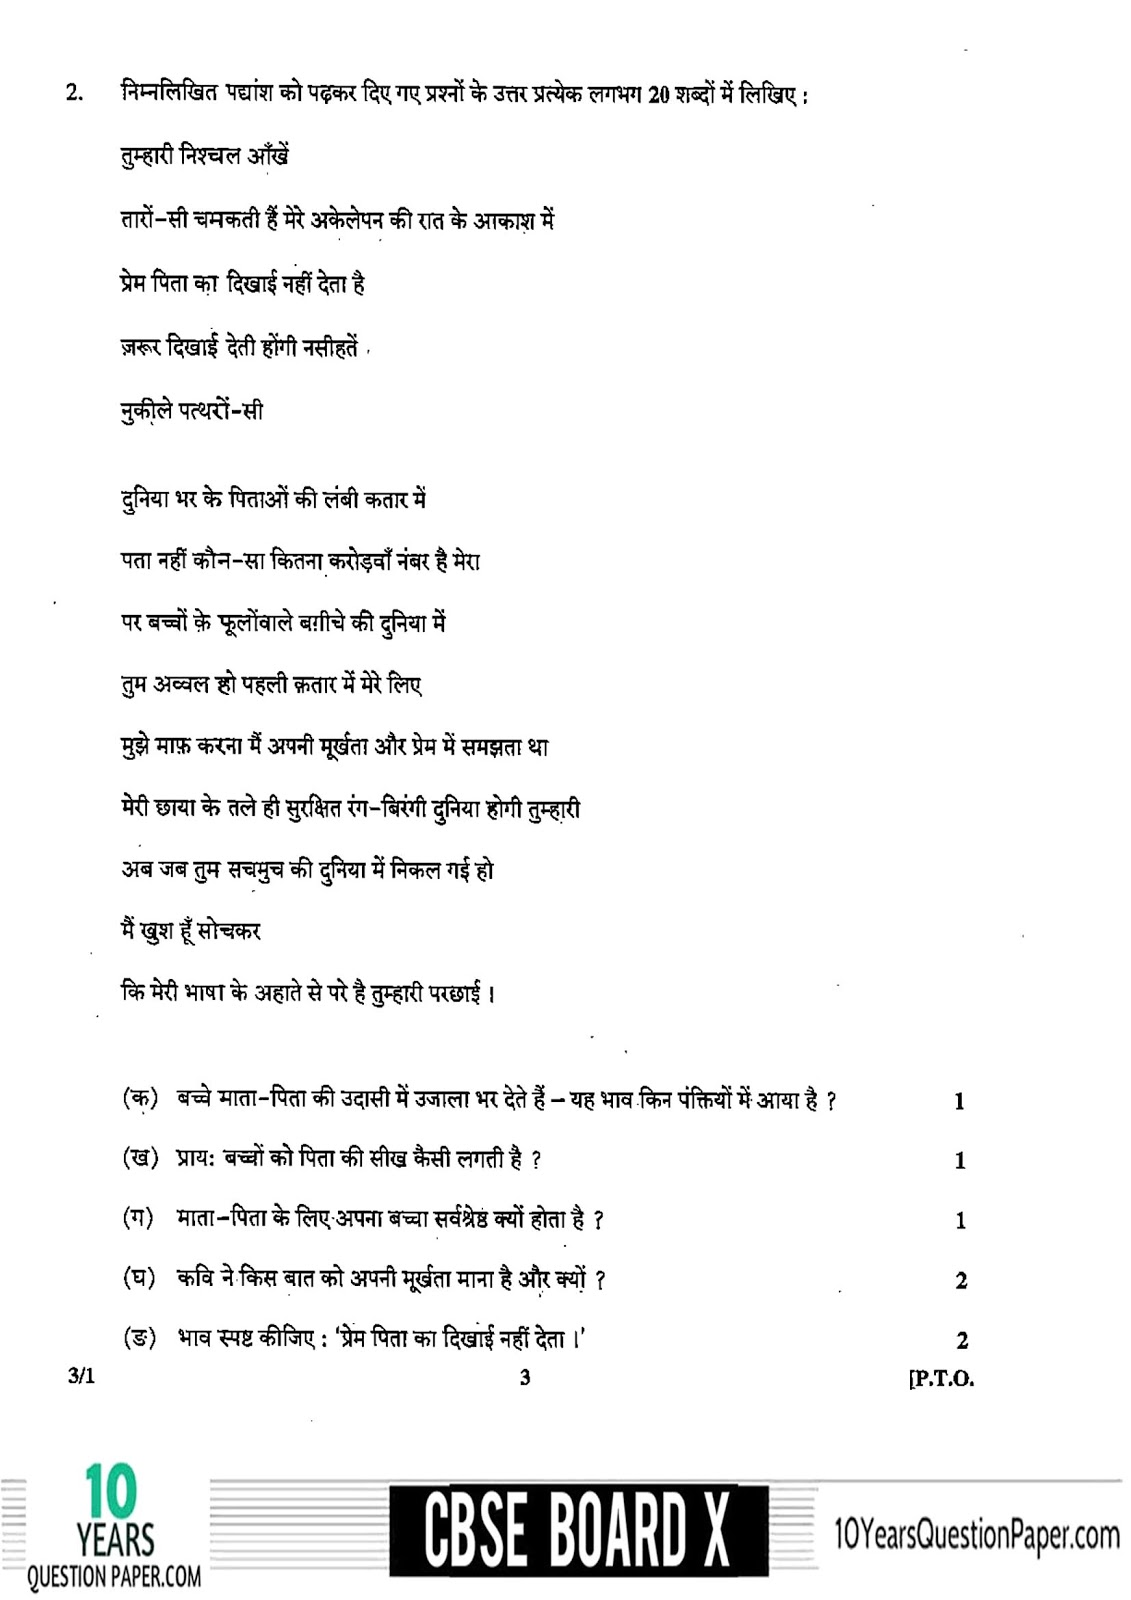 CBSE Board 2018 Hindi Course A Question paper Class 10 Page-03